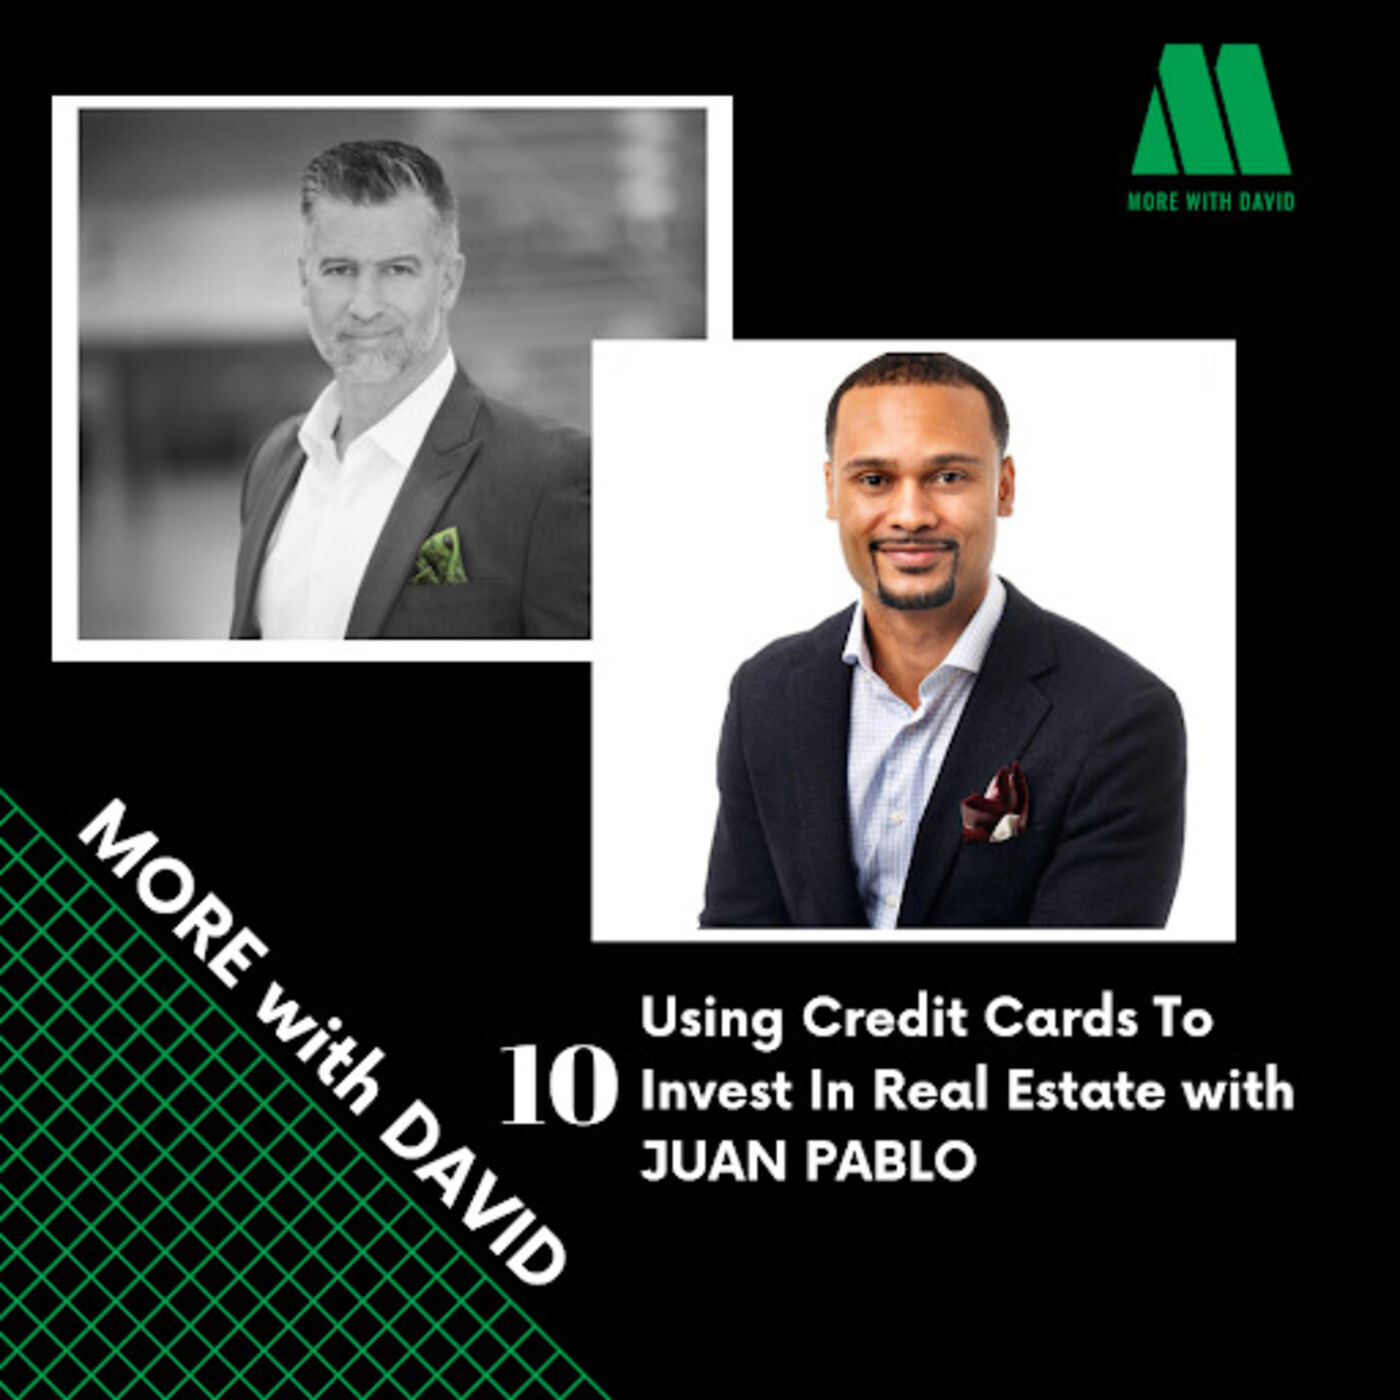 Using Credit Cards To Invest In Real Estate